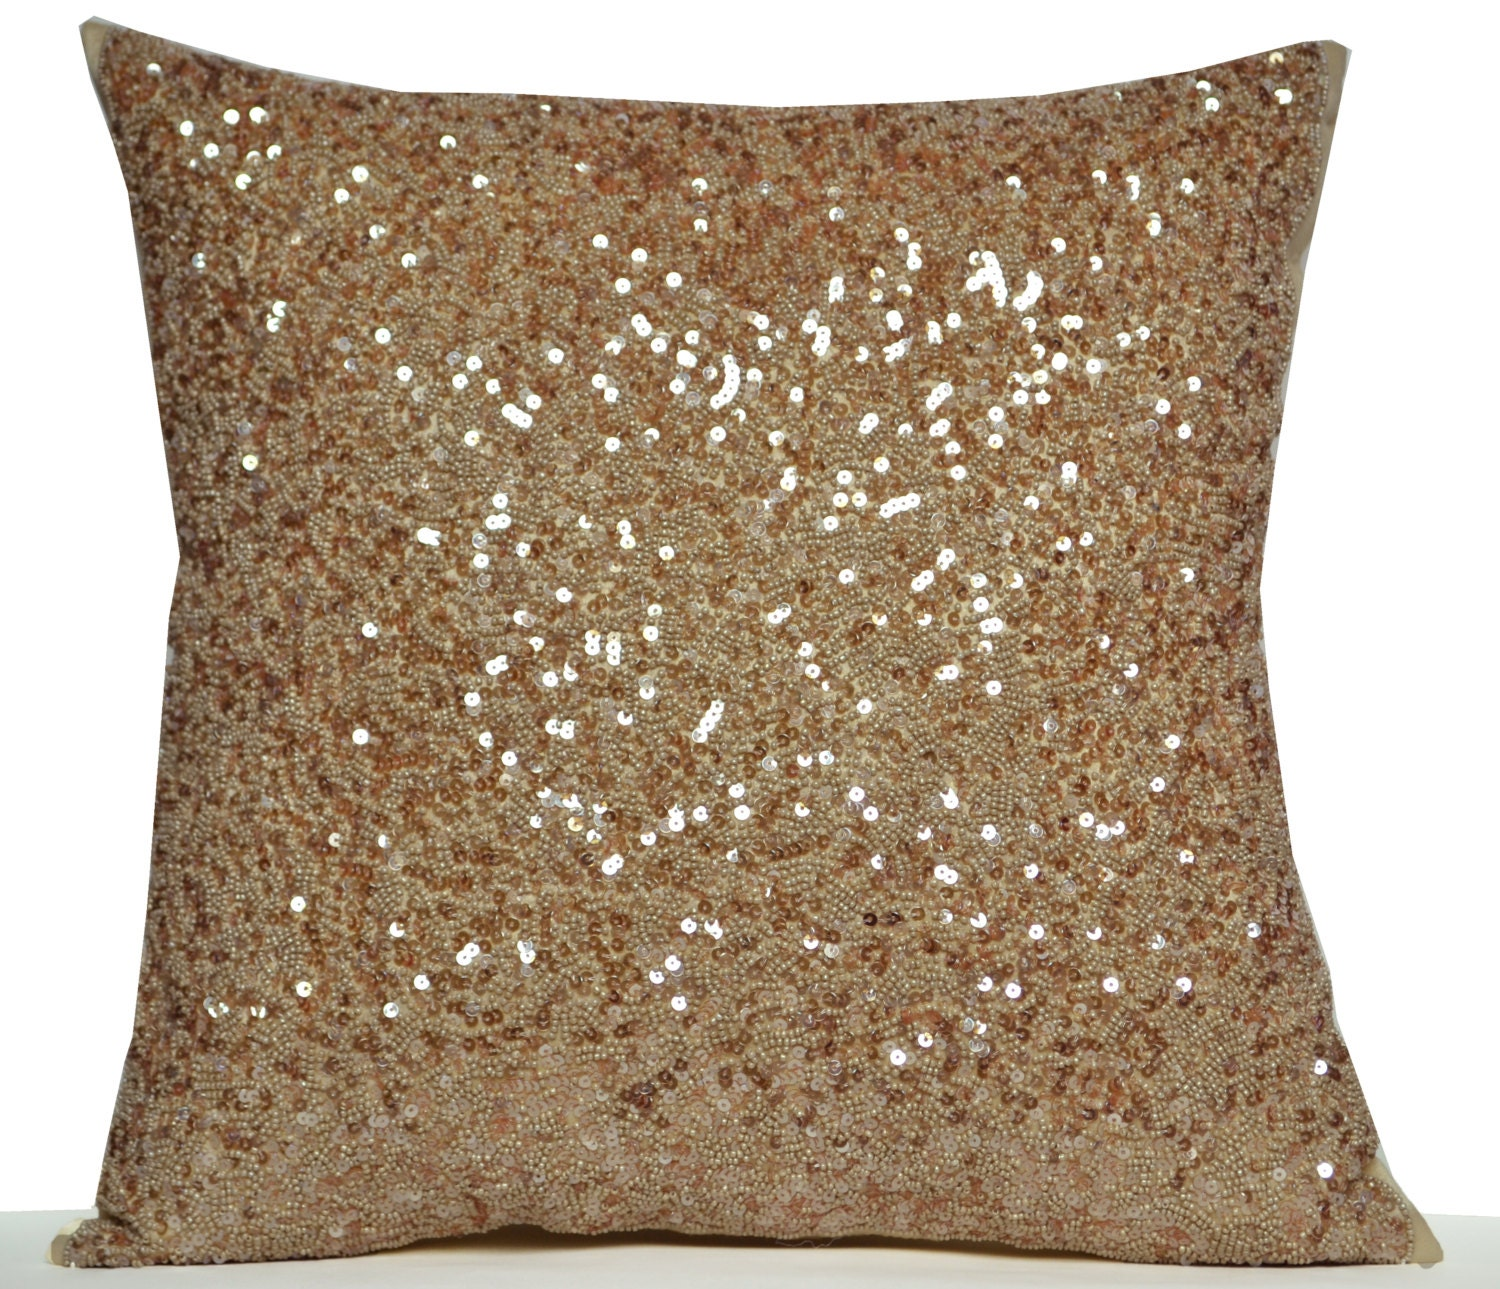 Throw Pillows Lowes : Designer Throw Pillow Cover Beige Silk Luxury Confetti